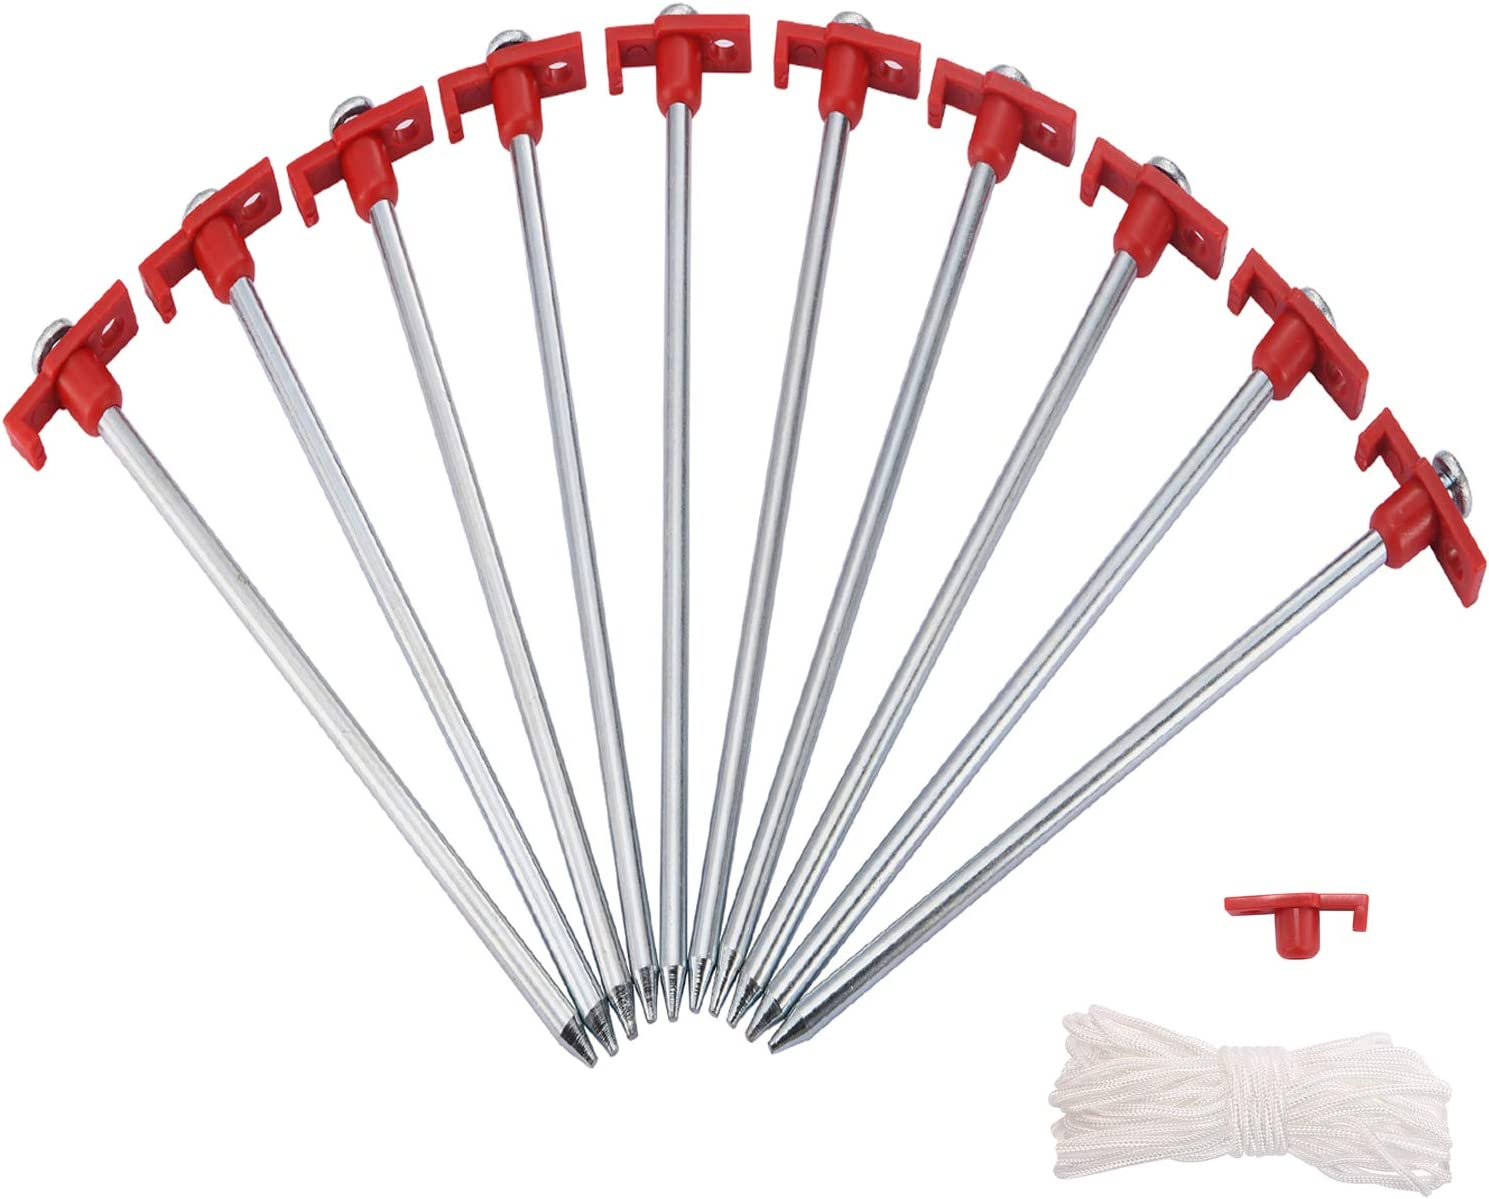 Galvanized Non-Rust Stakes Pegs for Pop Up Canopy Camping Tent 10 Pcs Tent Stakes with 4Pcs 10ft Ropes /& 1 PVC Top Hiking Bonus 4 Ropes 10FT Length